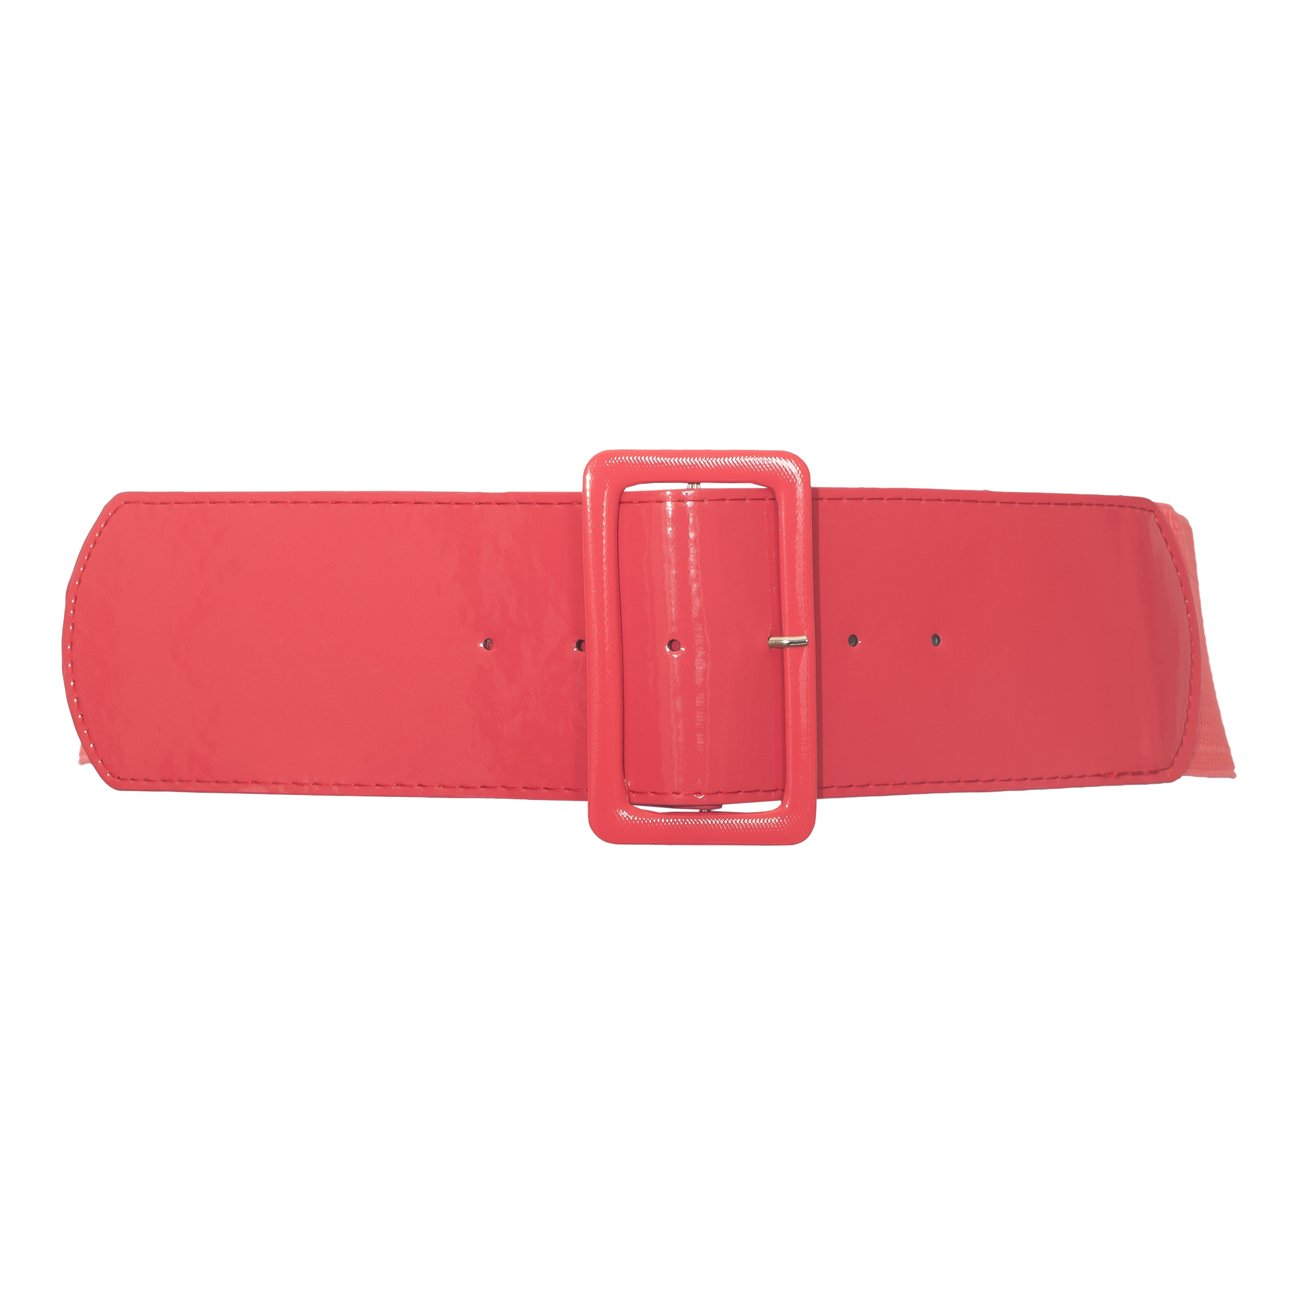 eVogues Plus Size Wide Patent Leather Fashion Belt Coral 18912 - One Size Plus